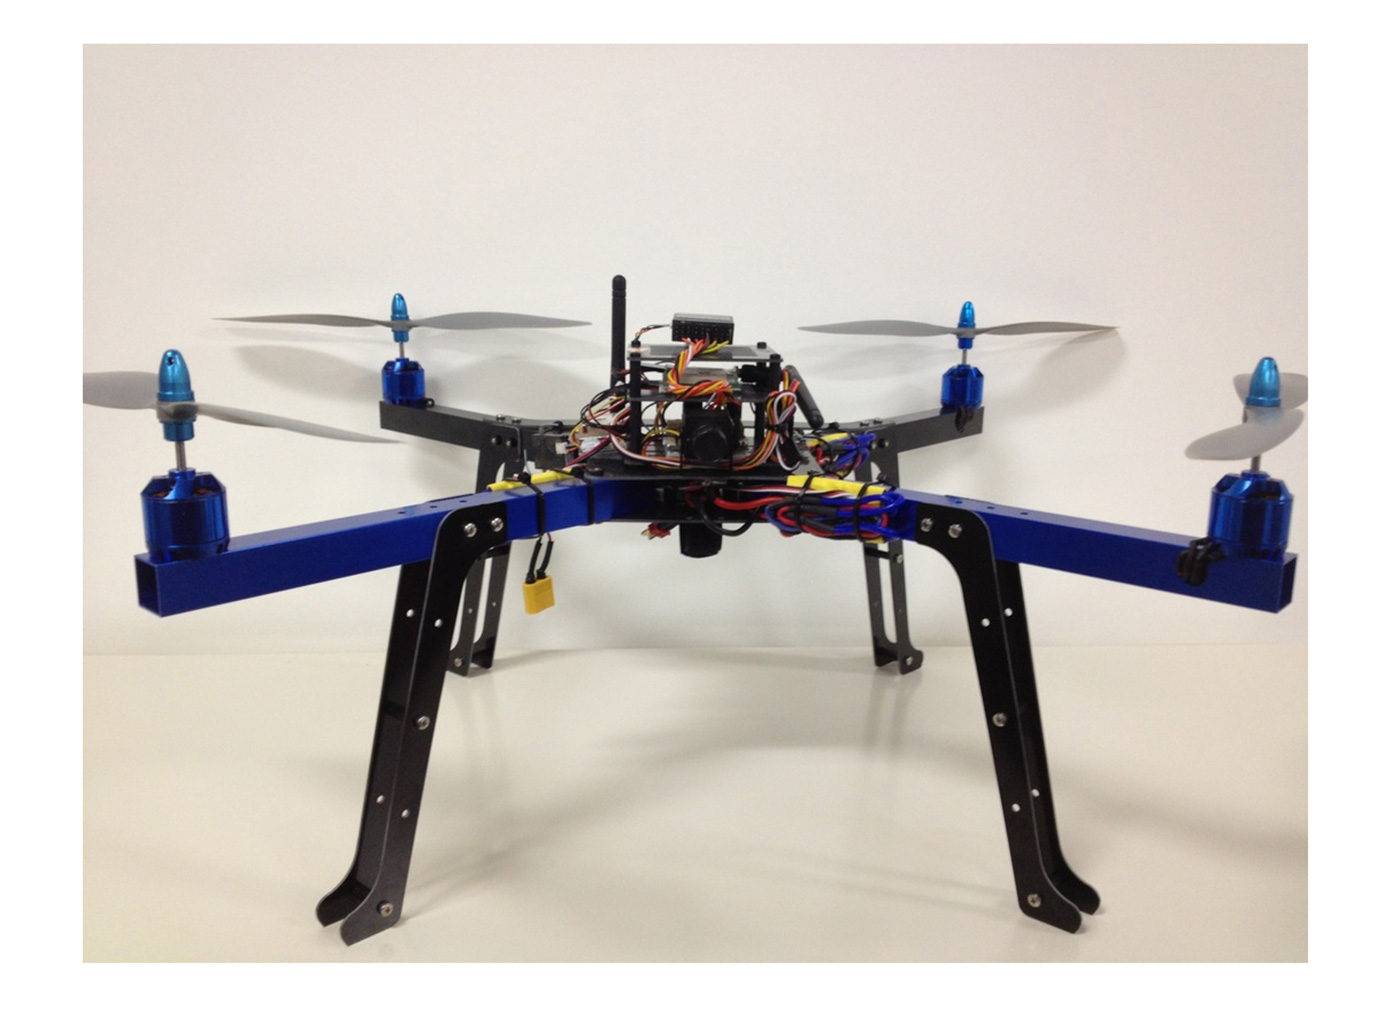 Small-scale air autonomous vehicle. The AUTONOMOUS ROBOTIC SYSTEMS LAB is  dedicated to the research on all aspects of Autonomous Robotic Systems, from conceptual design to detailed assembly, testing, and evaluation.